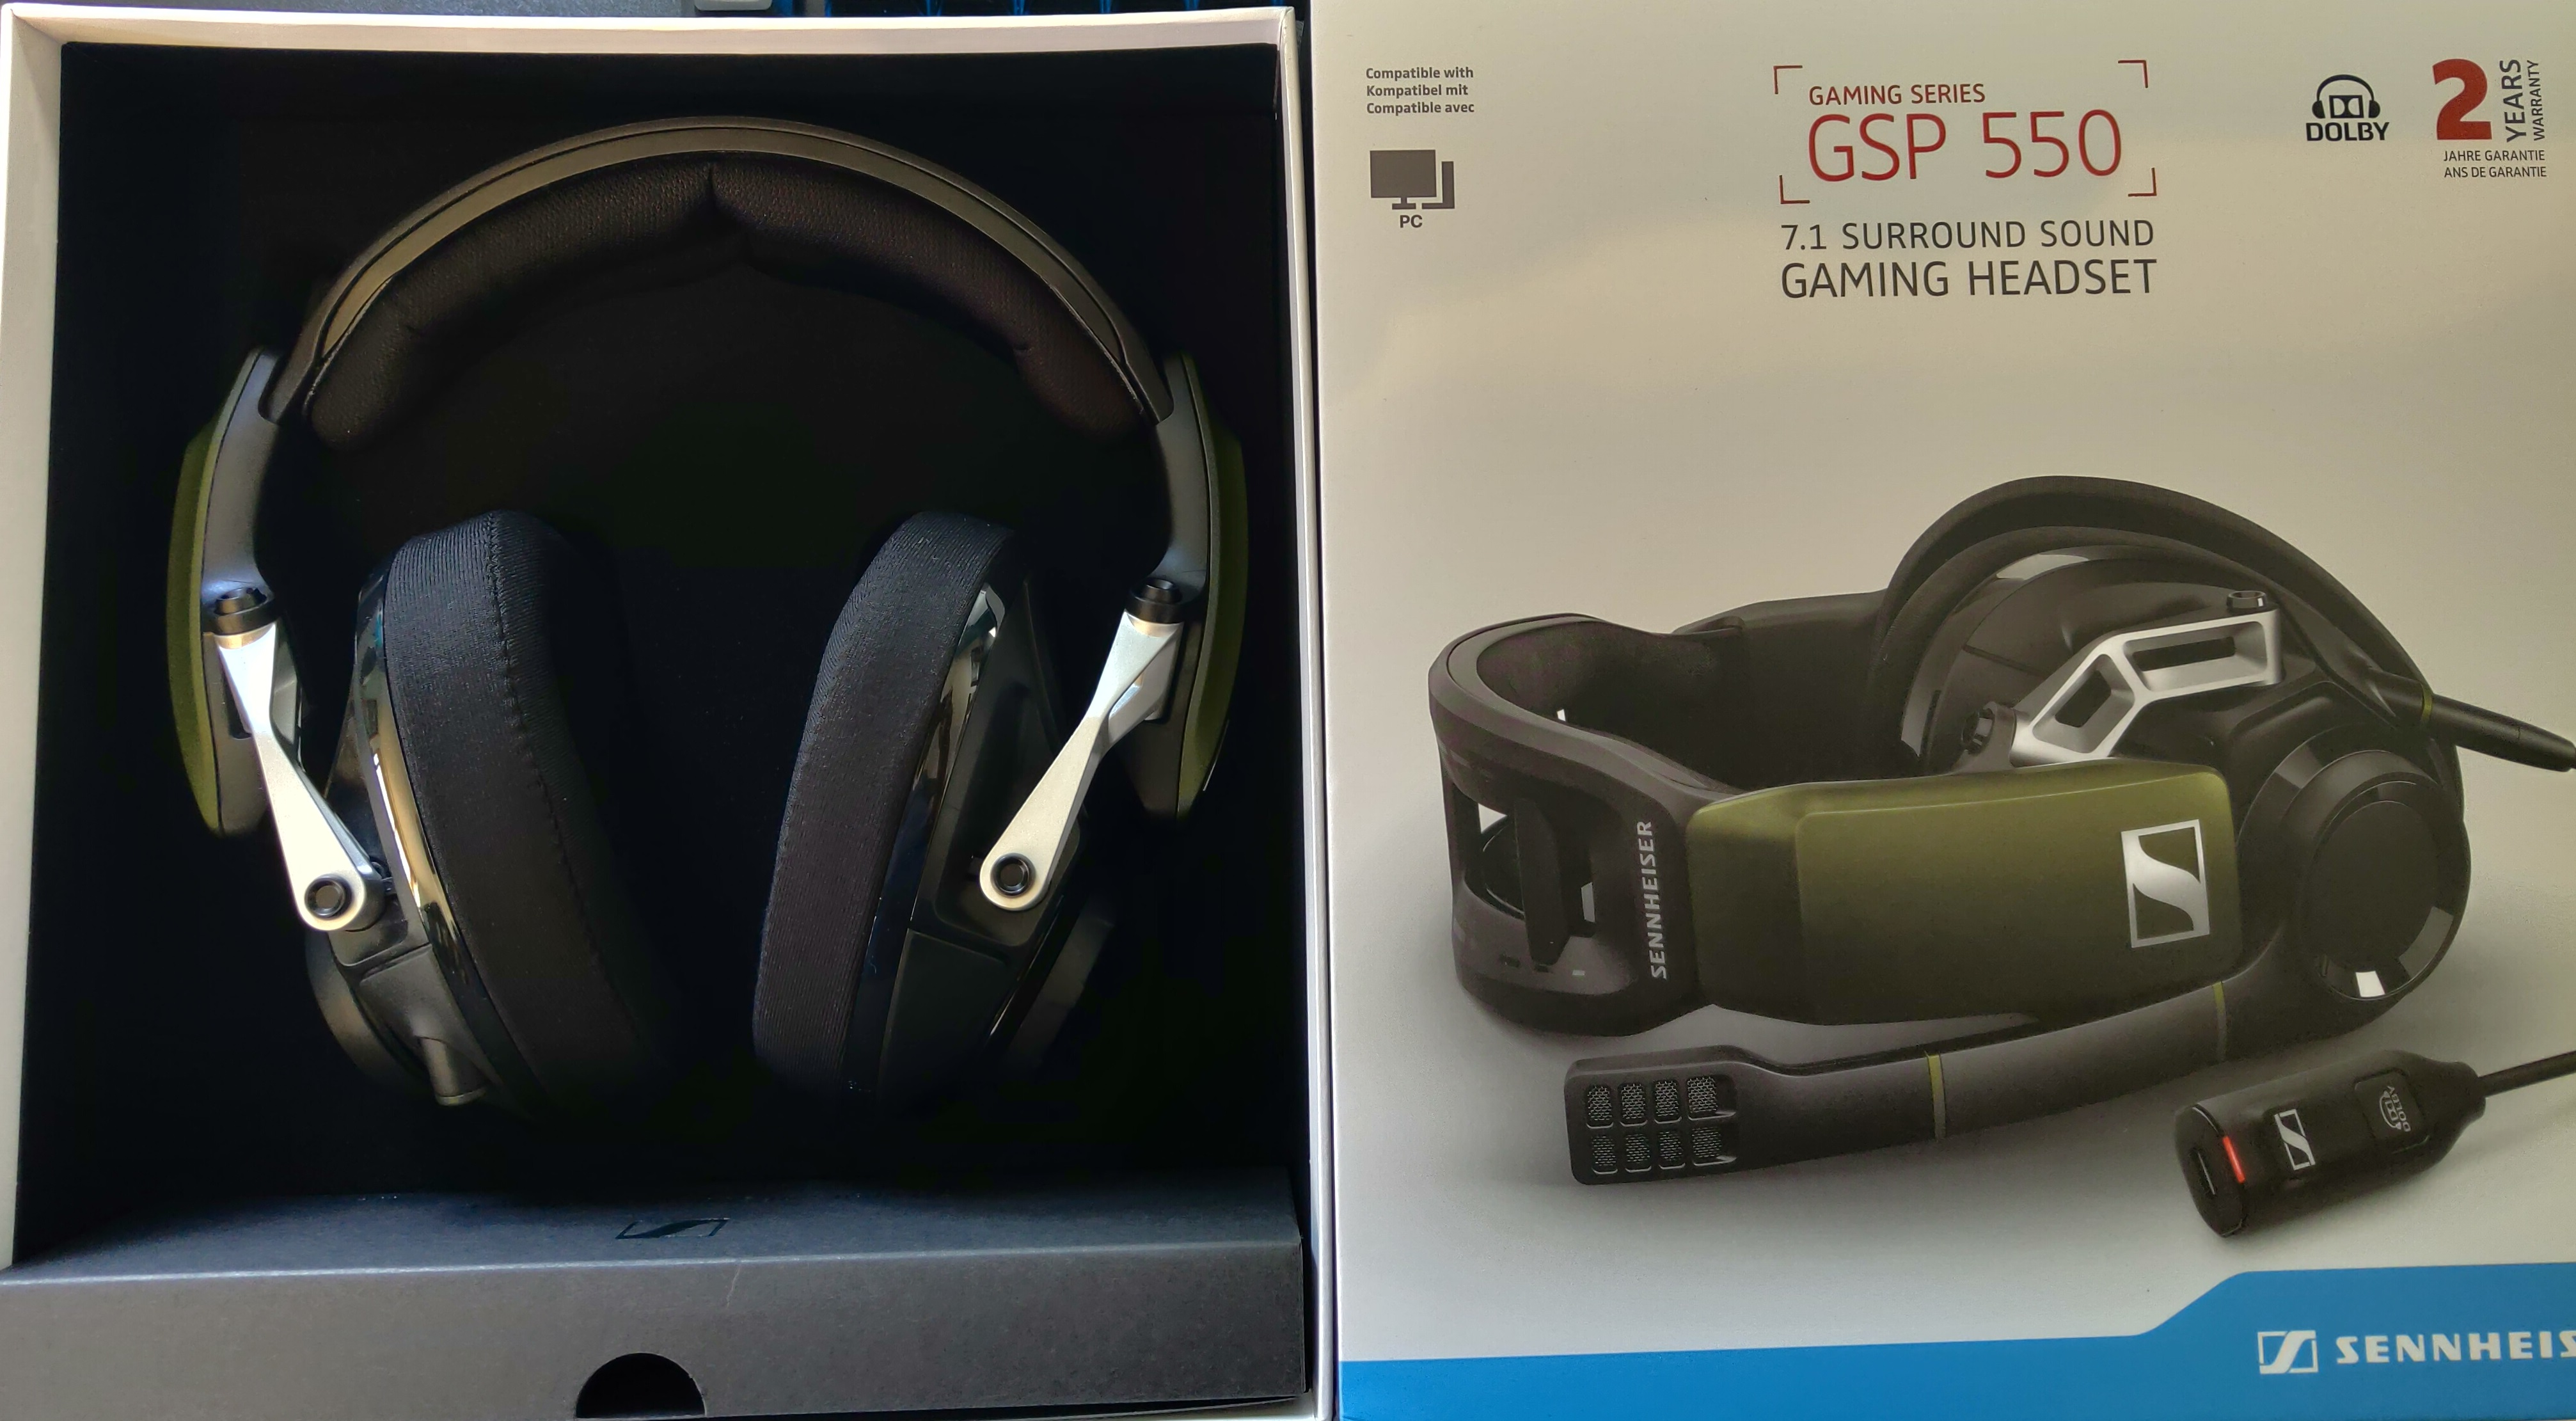 The Hardware Review – Sennheiser GSP 550 Gaming Headset